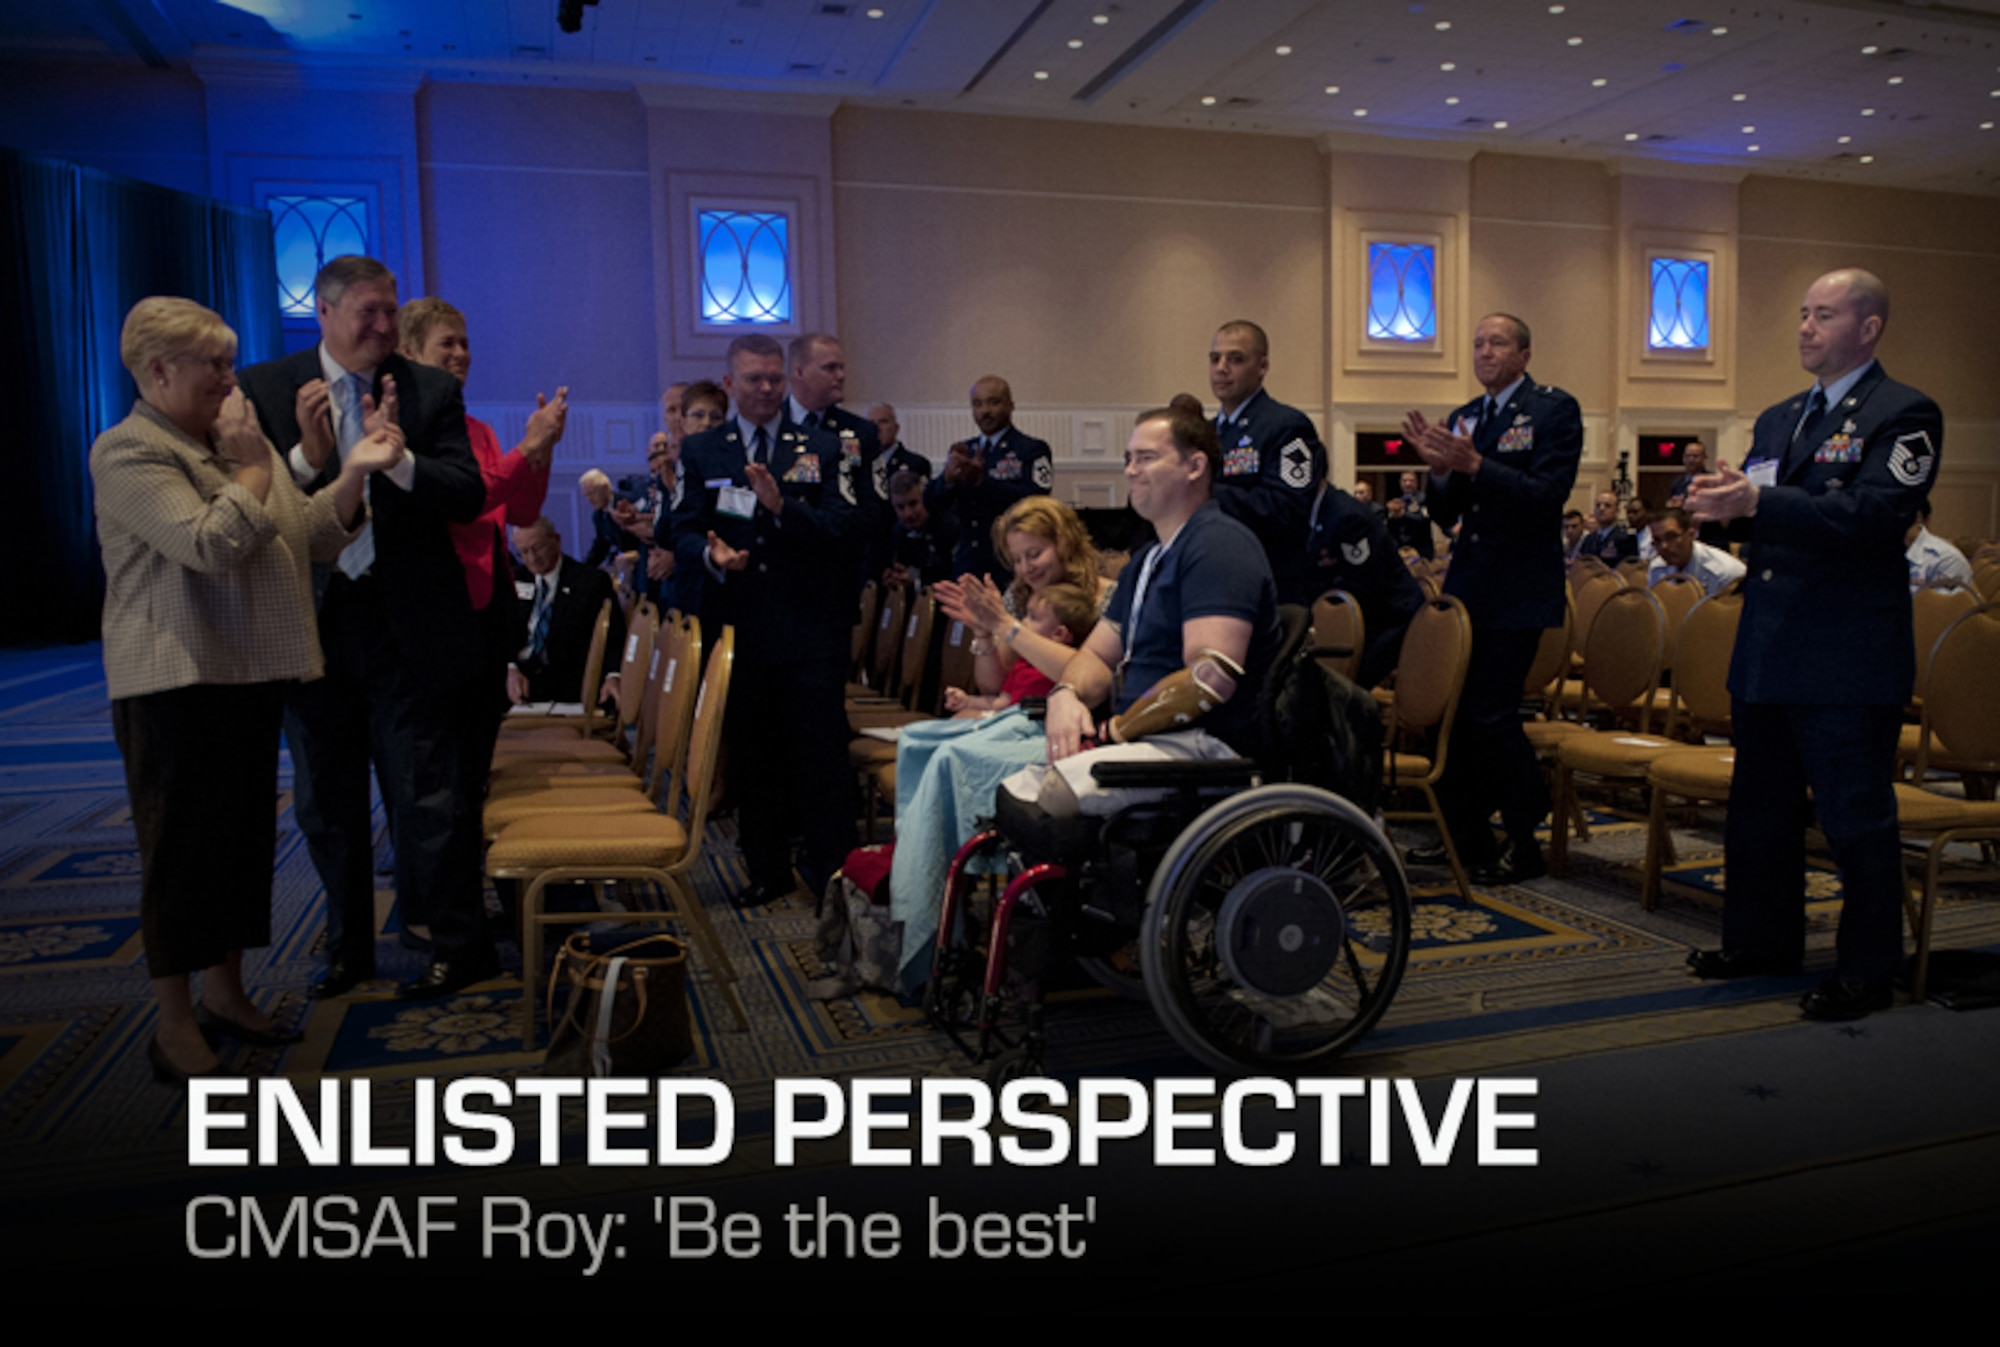 Tech. Sgt. Joe Deslauriers, center, his son, Cameron, and wife, Lisa, are applauded by the crowd during the enlisted call of Air Force Association's Air and Space Conference and Technology Exposition in Washington, Sept. 19, 2012. Deslauriers, who is an explosives ordnance technician assigned to the 1st Special Operations Civil Engineer Squadron, Hurlburt, Fla., lost both legs in Afghanistan last year. To the left is Paula Roy; wife of CMSAF Roy; Secretary of the Air Force Michael B. Donley and his wife, Gail. (U.S. Air Force photo by Val Gempis)